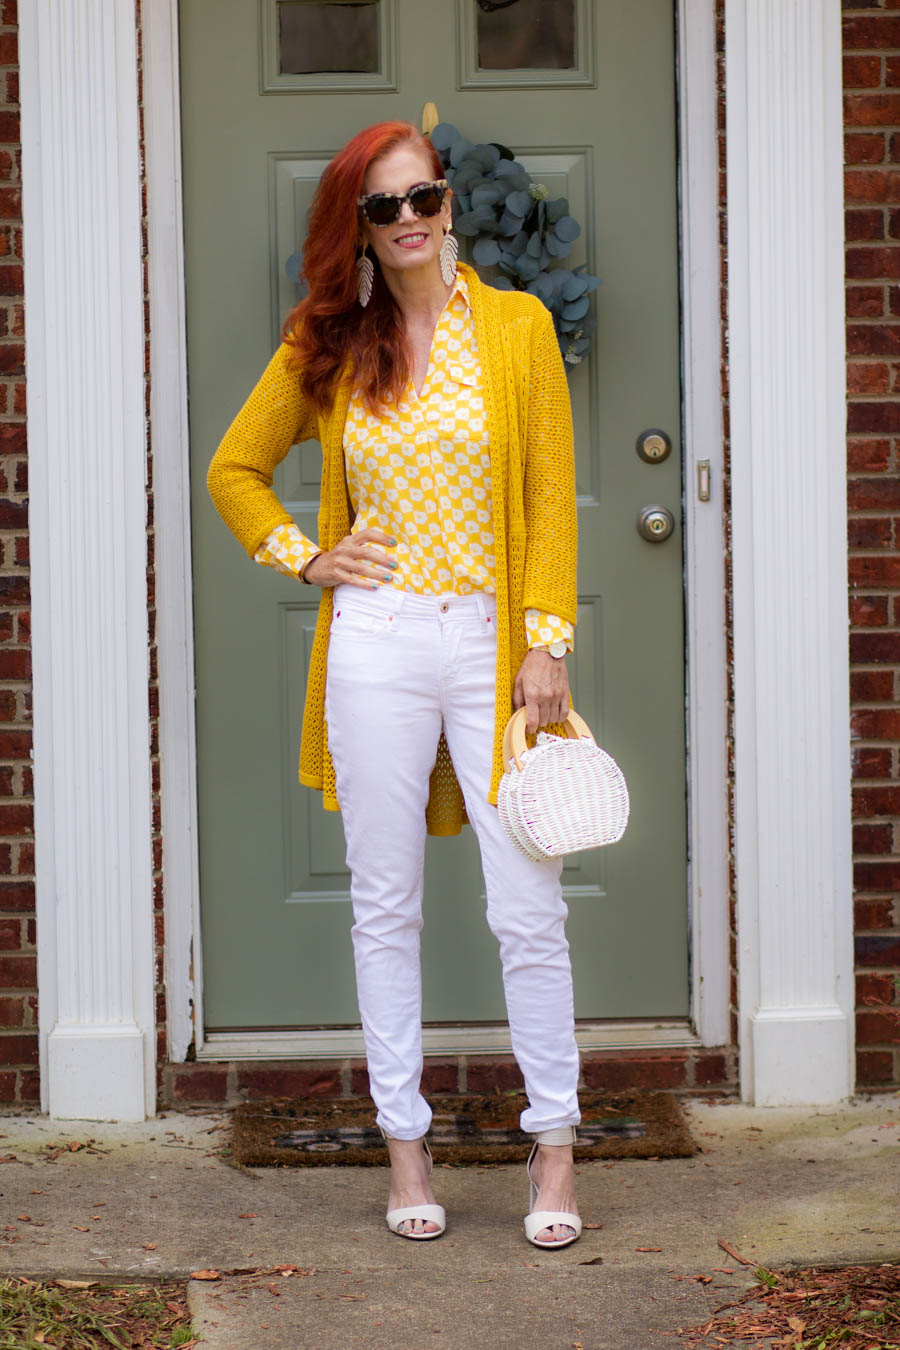 White and yellow blouse and white jeans